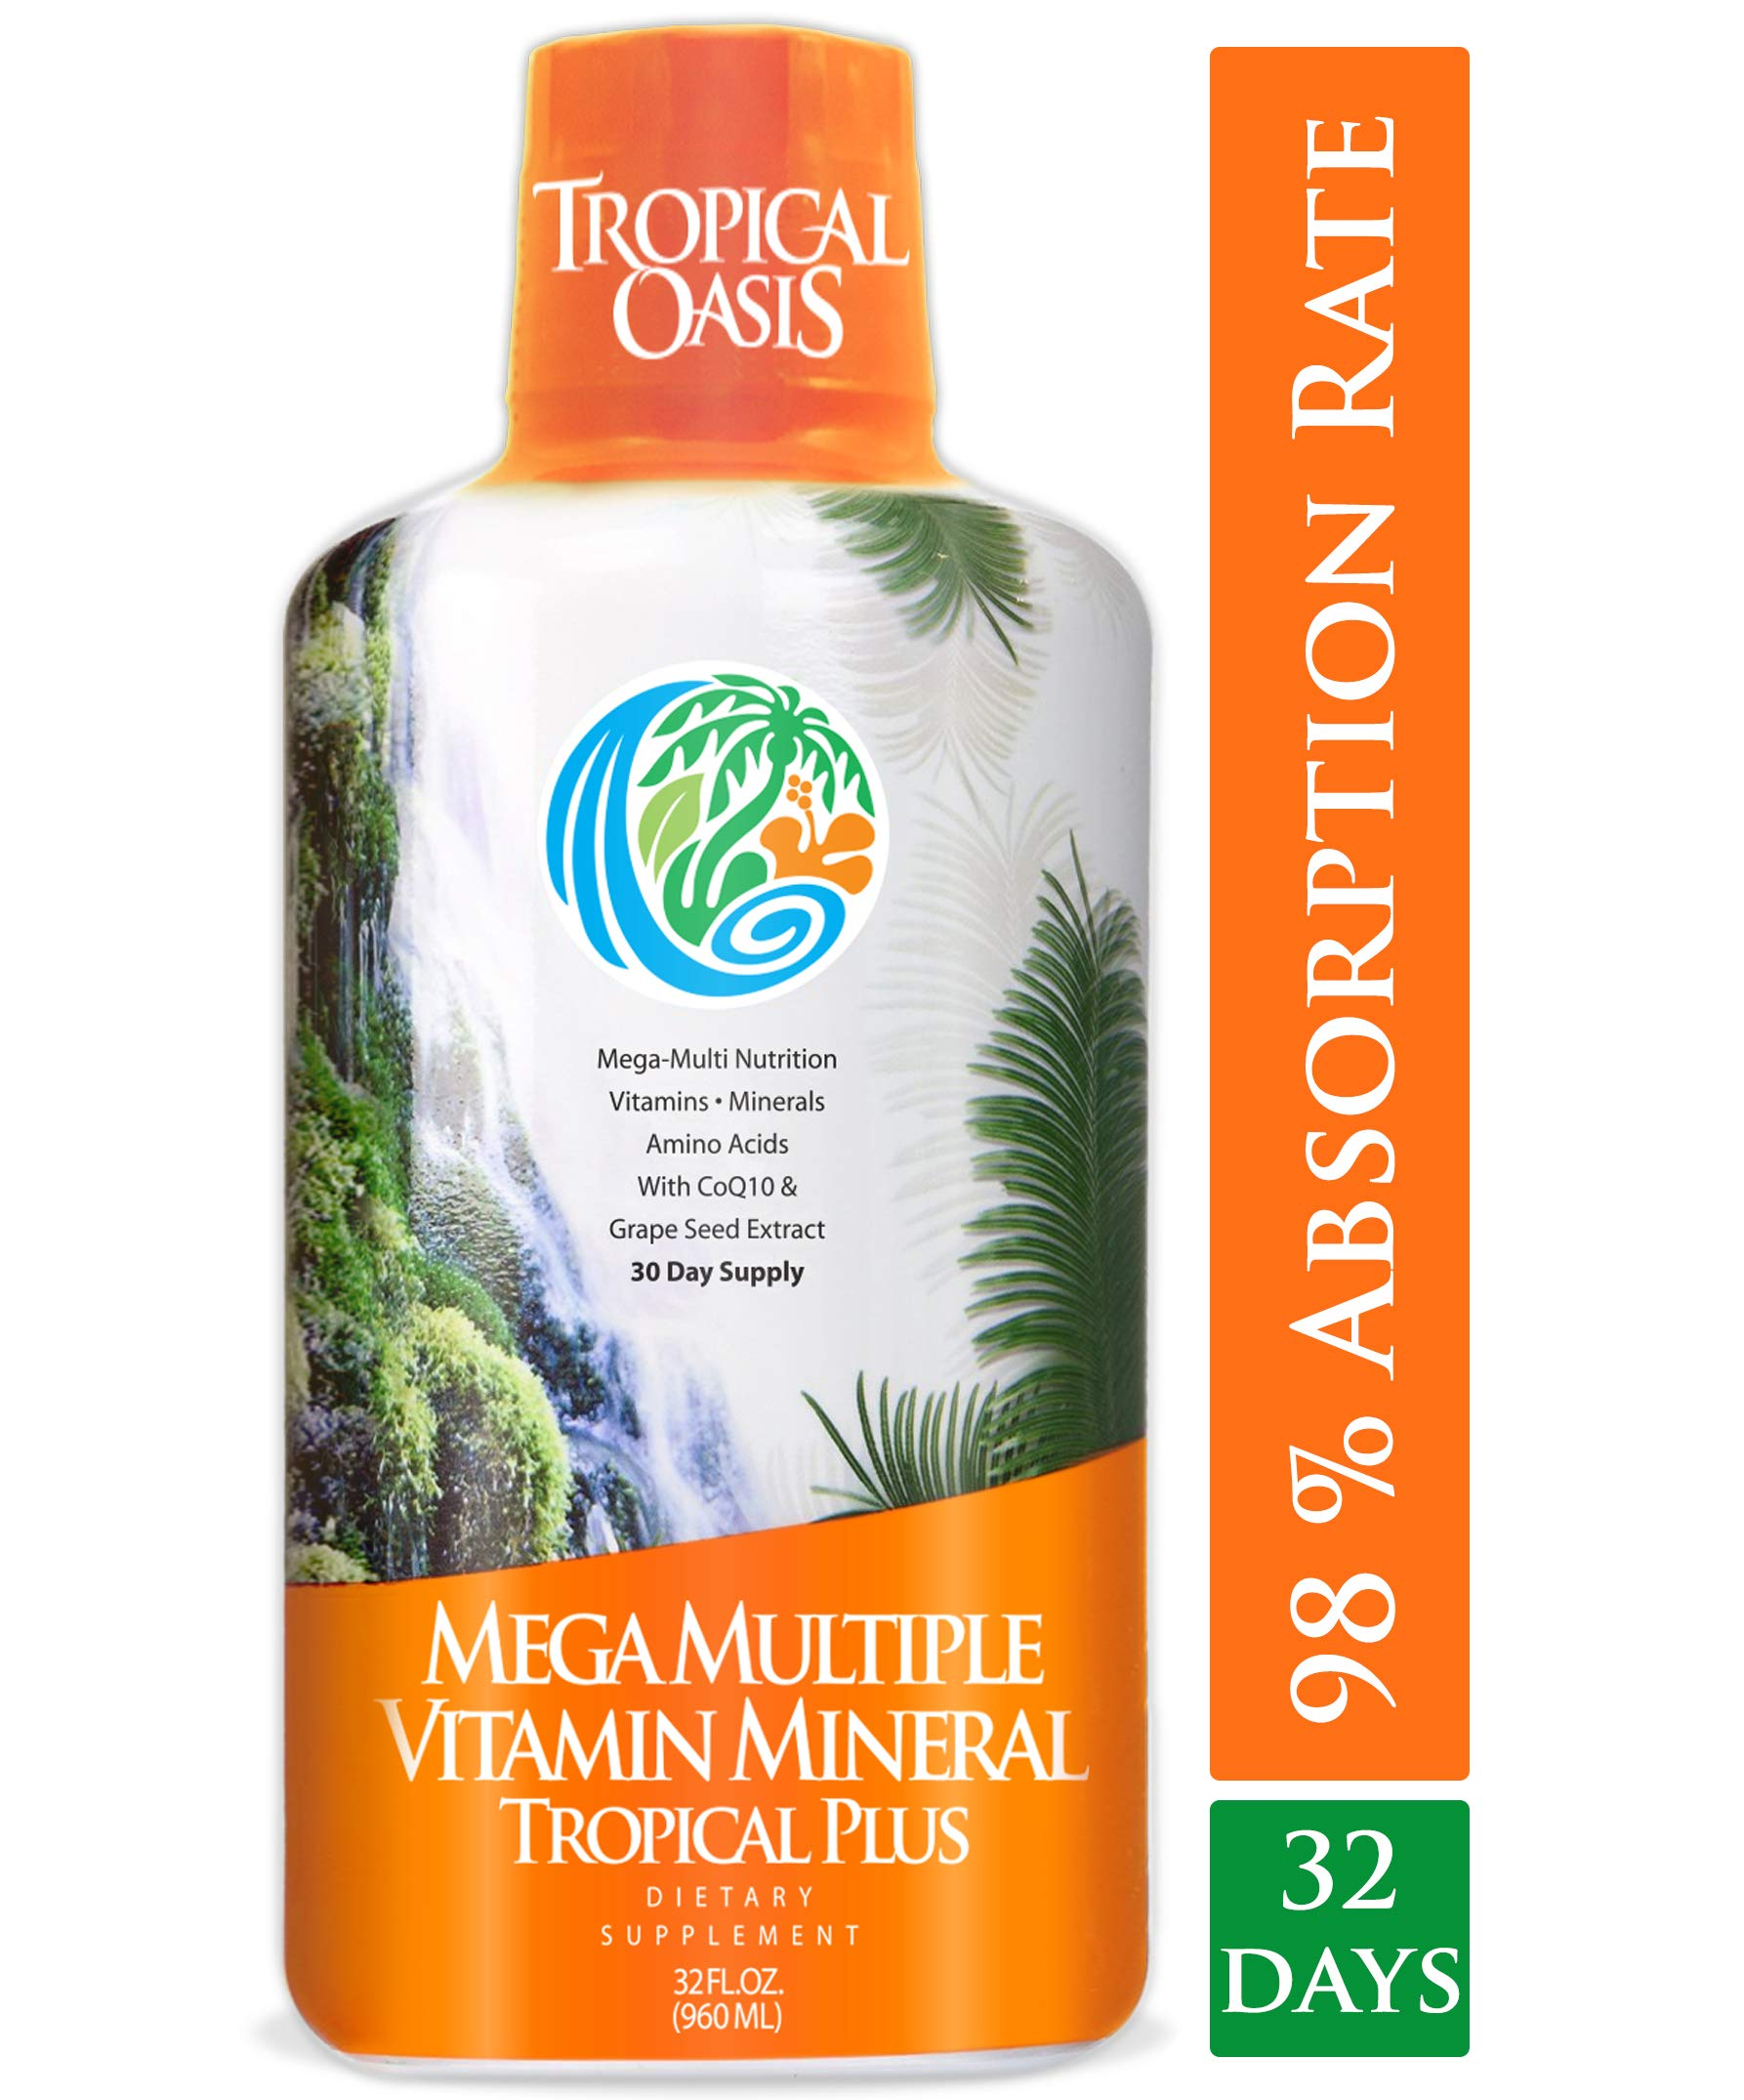 Tropical Oasis Mega Plus Multivitamin